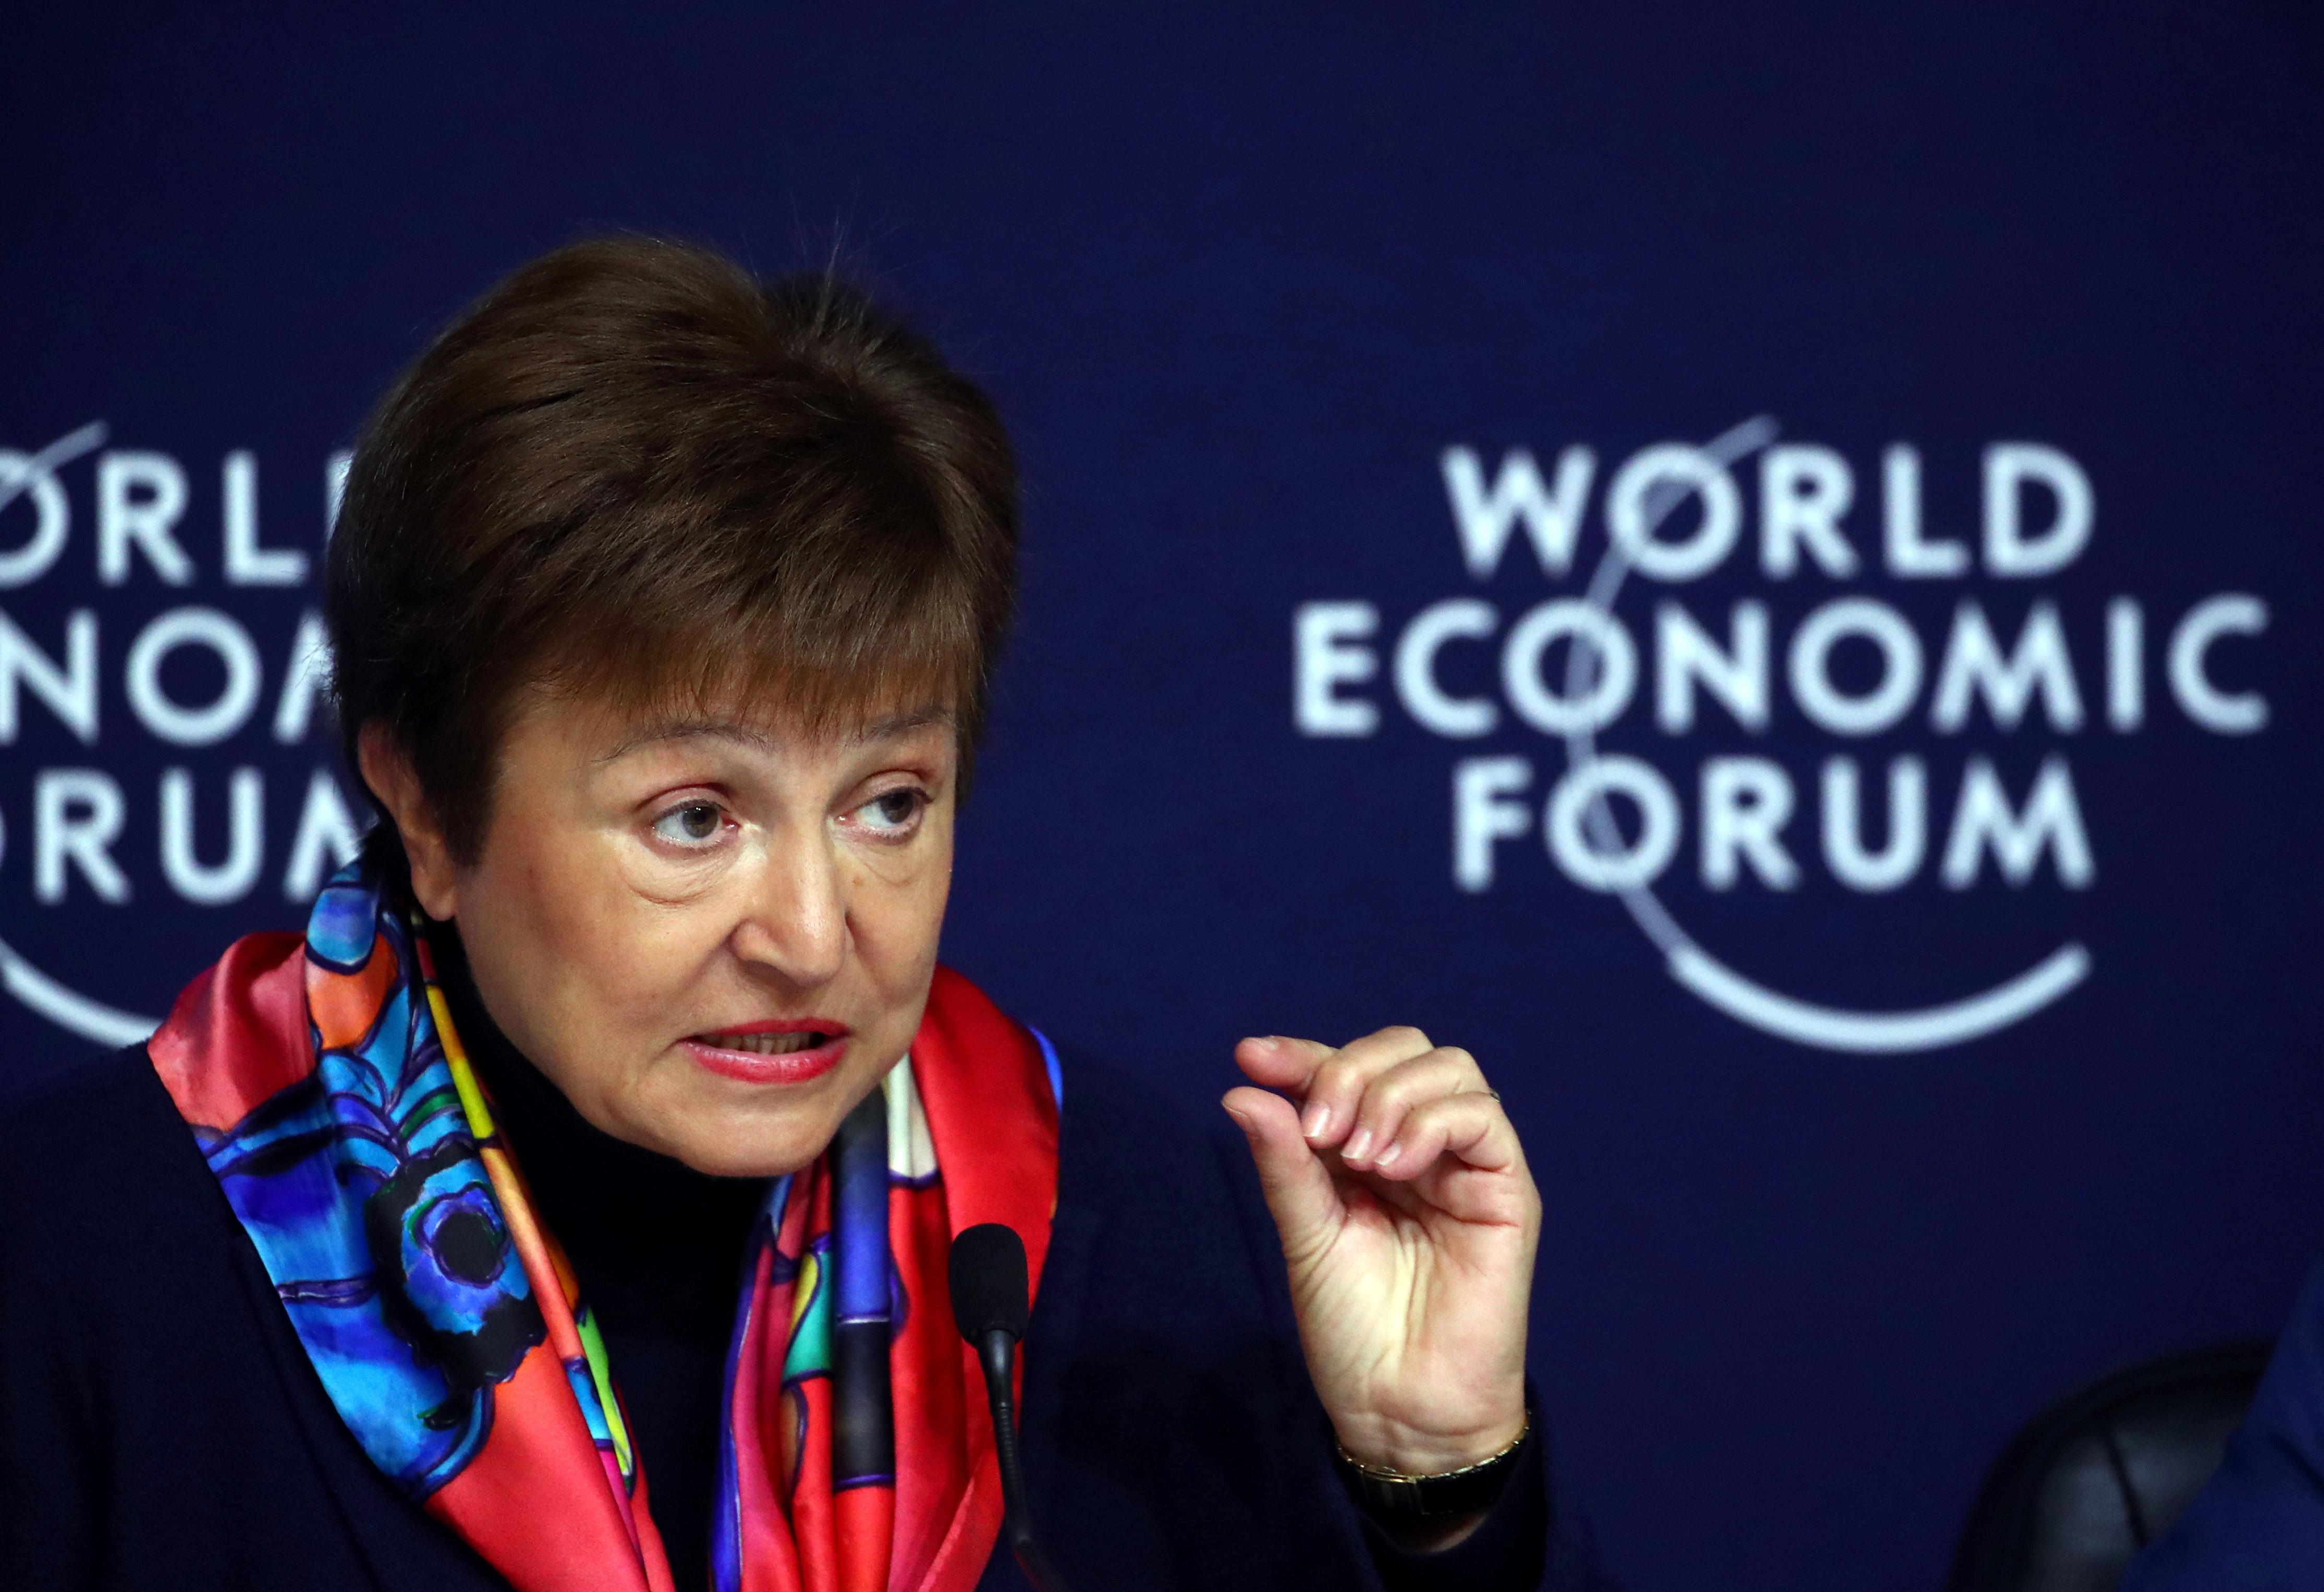 IMFManaging Director Kristalina Georgievaspeaks at a news conference ahead of the World Economic Forum (WEF) in Davos, Switzerland January 20, 2020. REUTERS/Denis Balibouse - RC2PJE9CFEVD